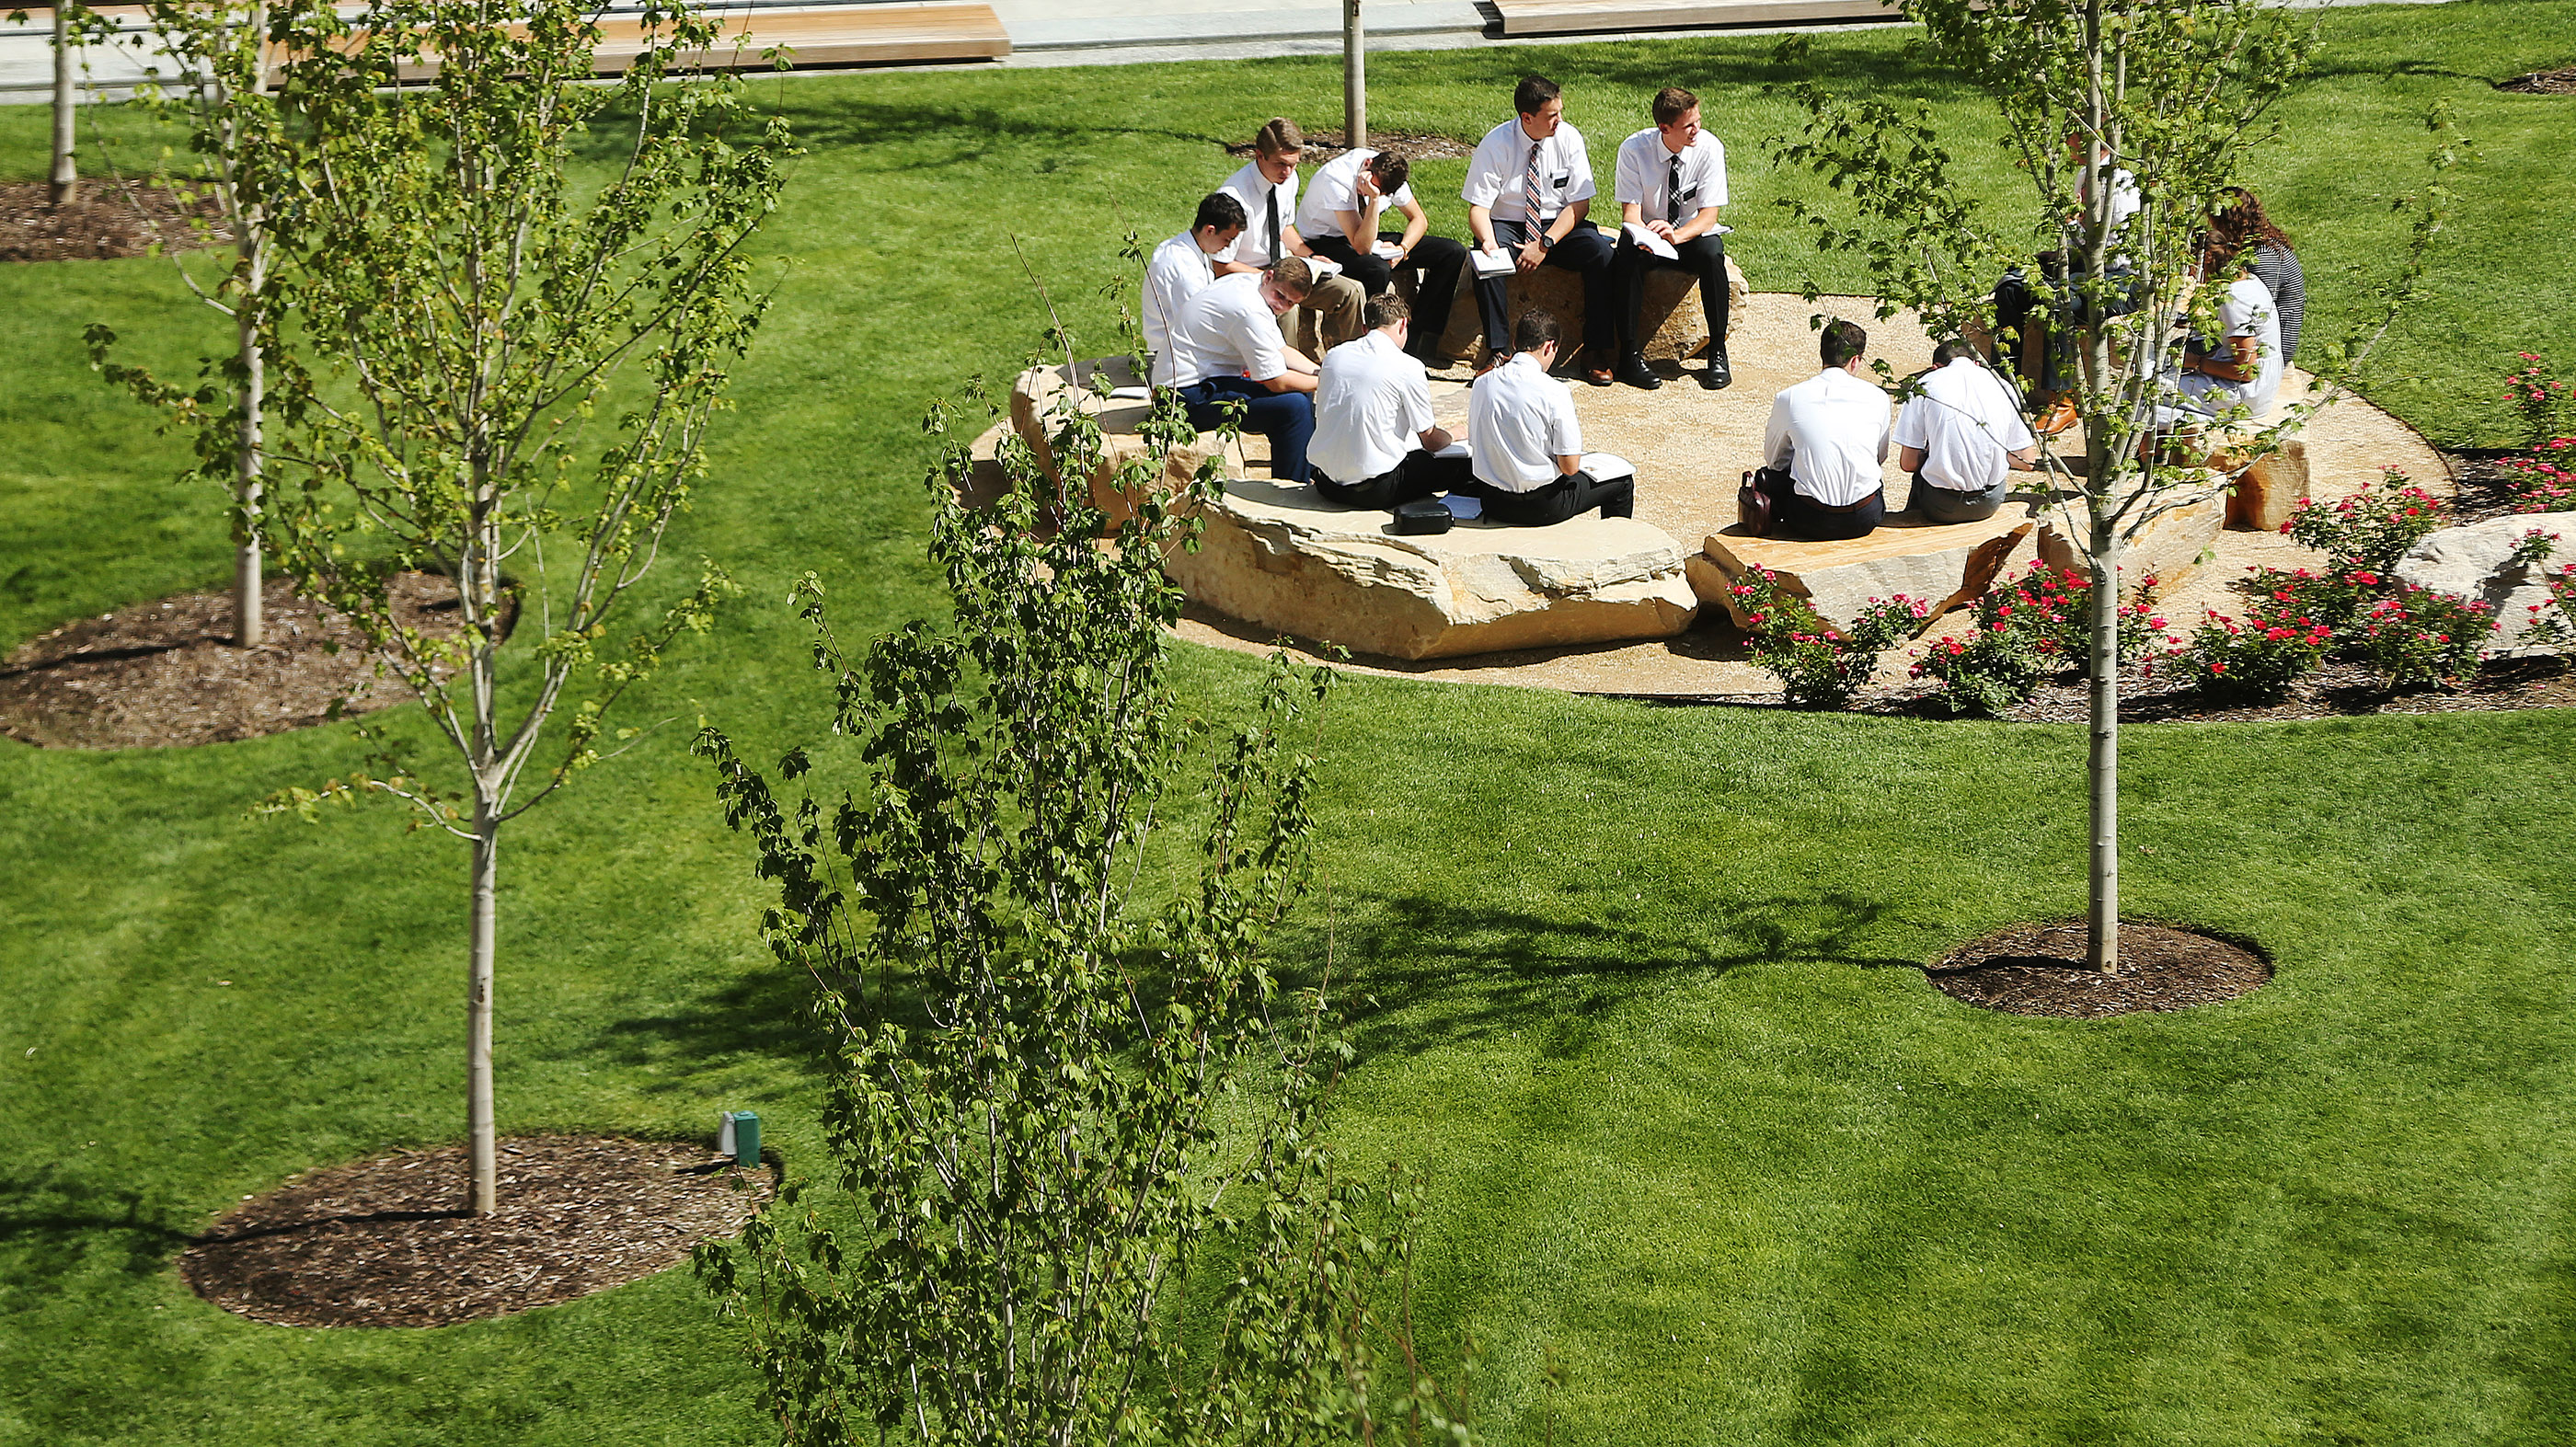 Missionaries study outside in an open-space setting at the Provo Missionary Training Center in Provo on Wednesday, July 26, 2017.